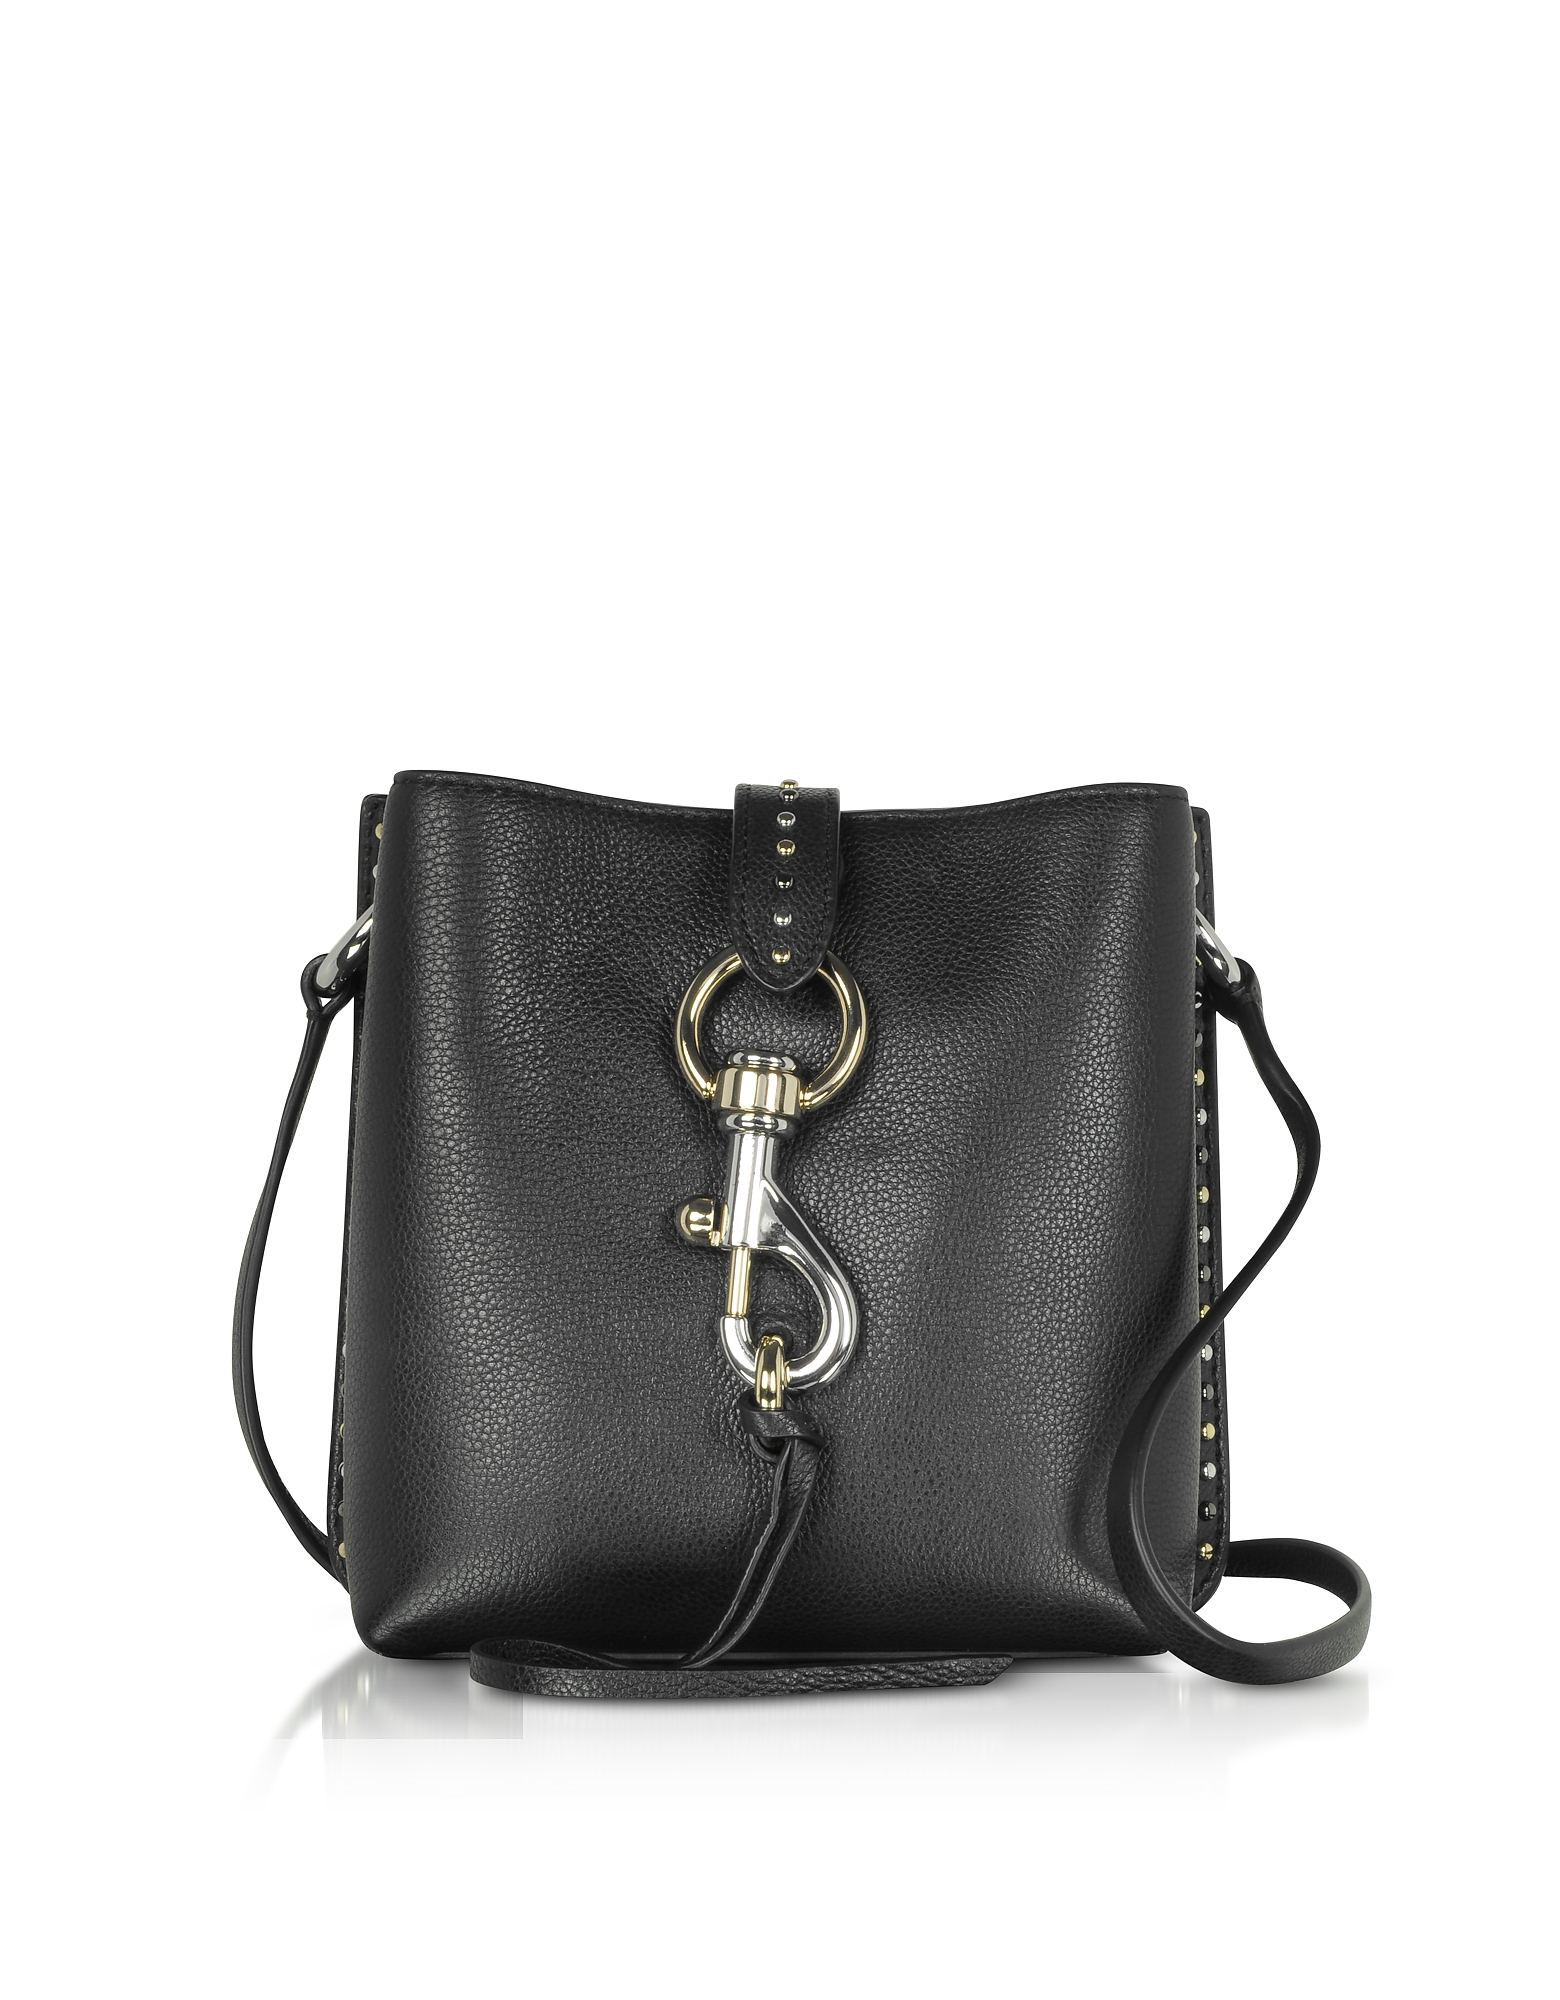 Rebecca Minkoff Designer Handbags, Megan Mini Black Leather Feed Bag with Studs